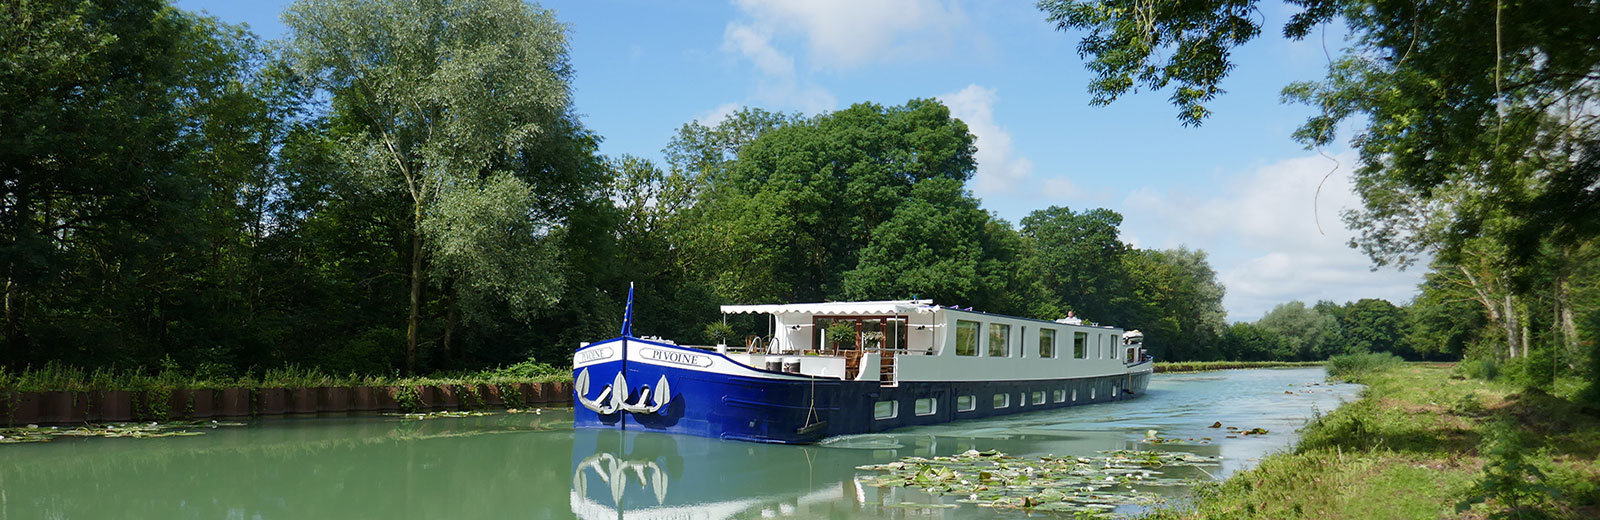 Spa Chalons En Champagne barges - barge lady